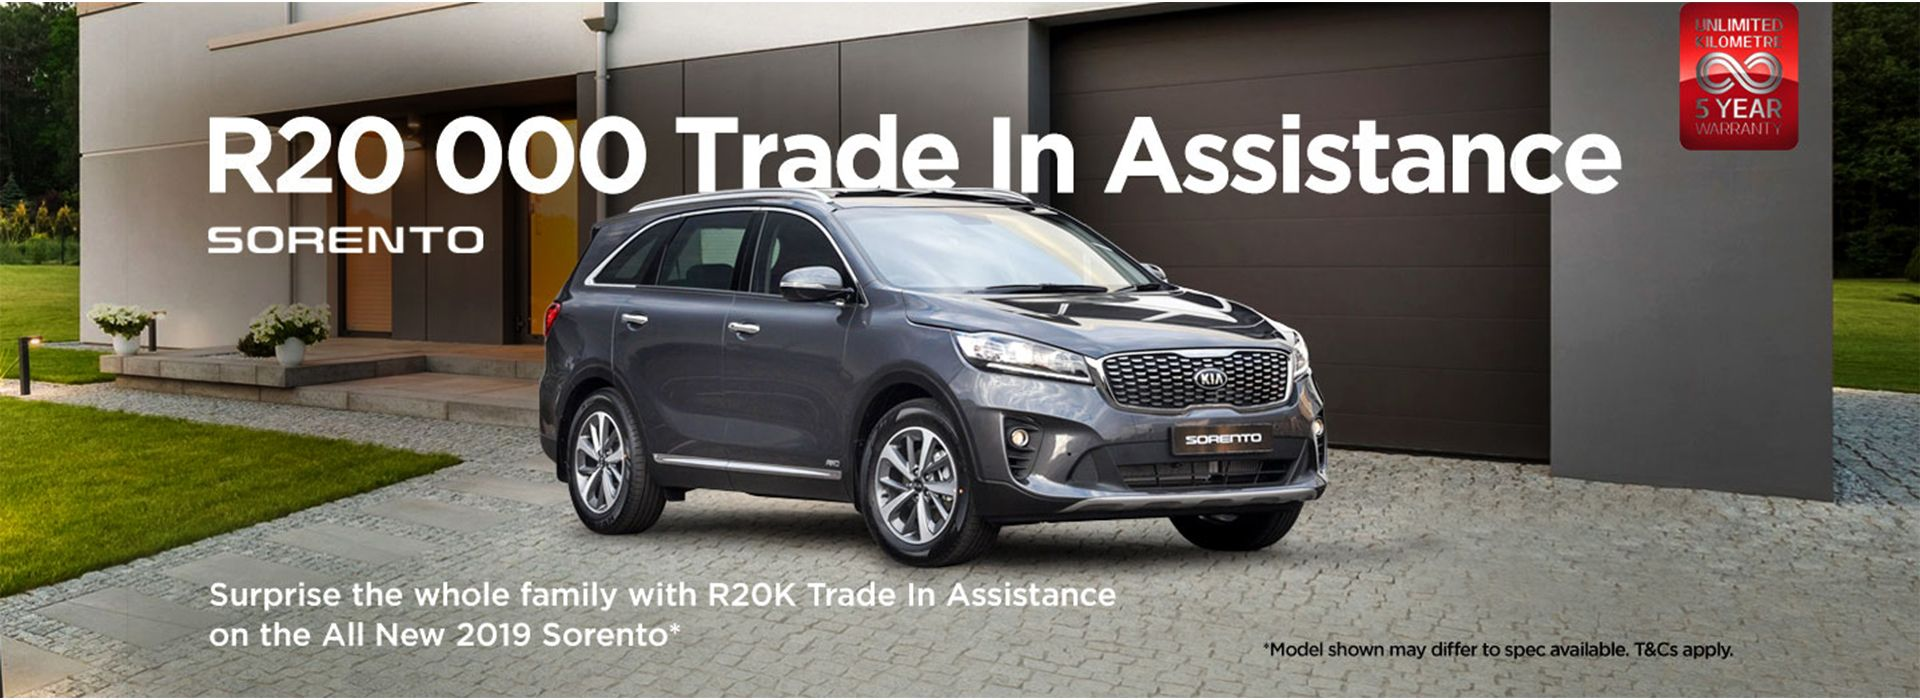 Sorento - R20 000 Trade In  Assistance